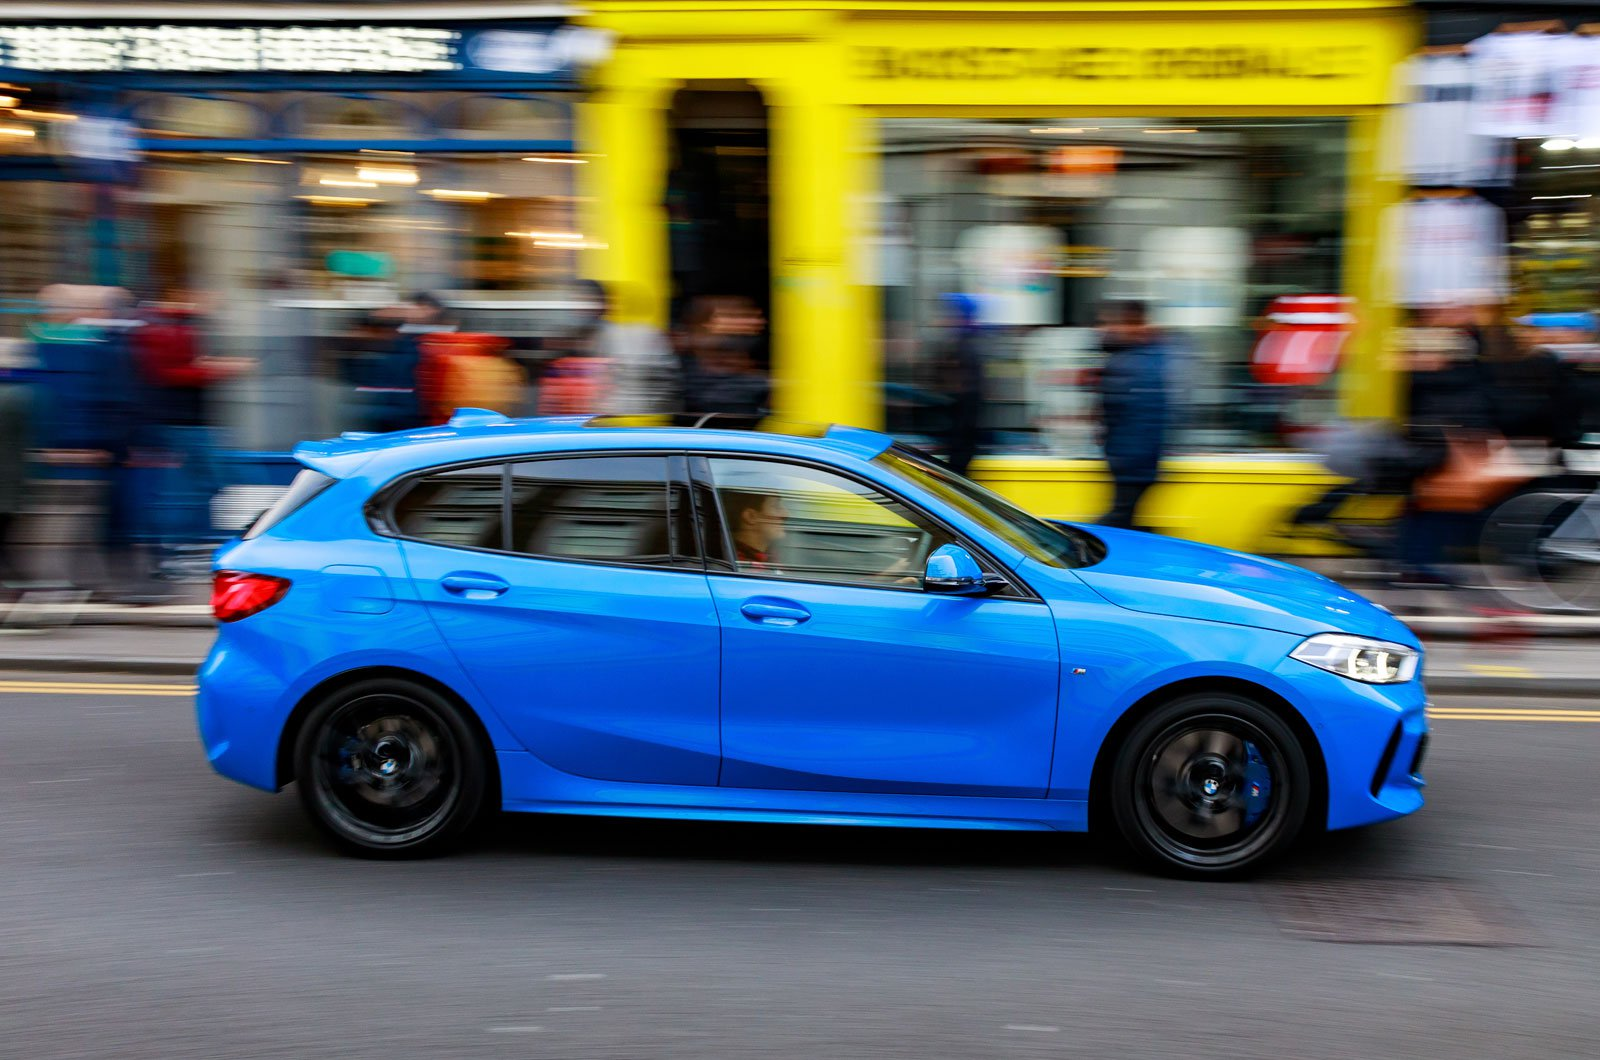 BMW 1 Series Notting Hill tracking